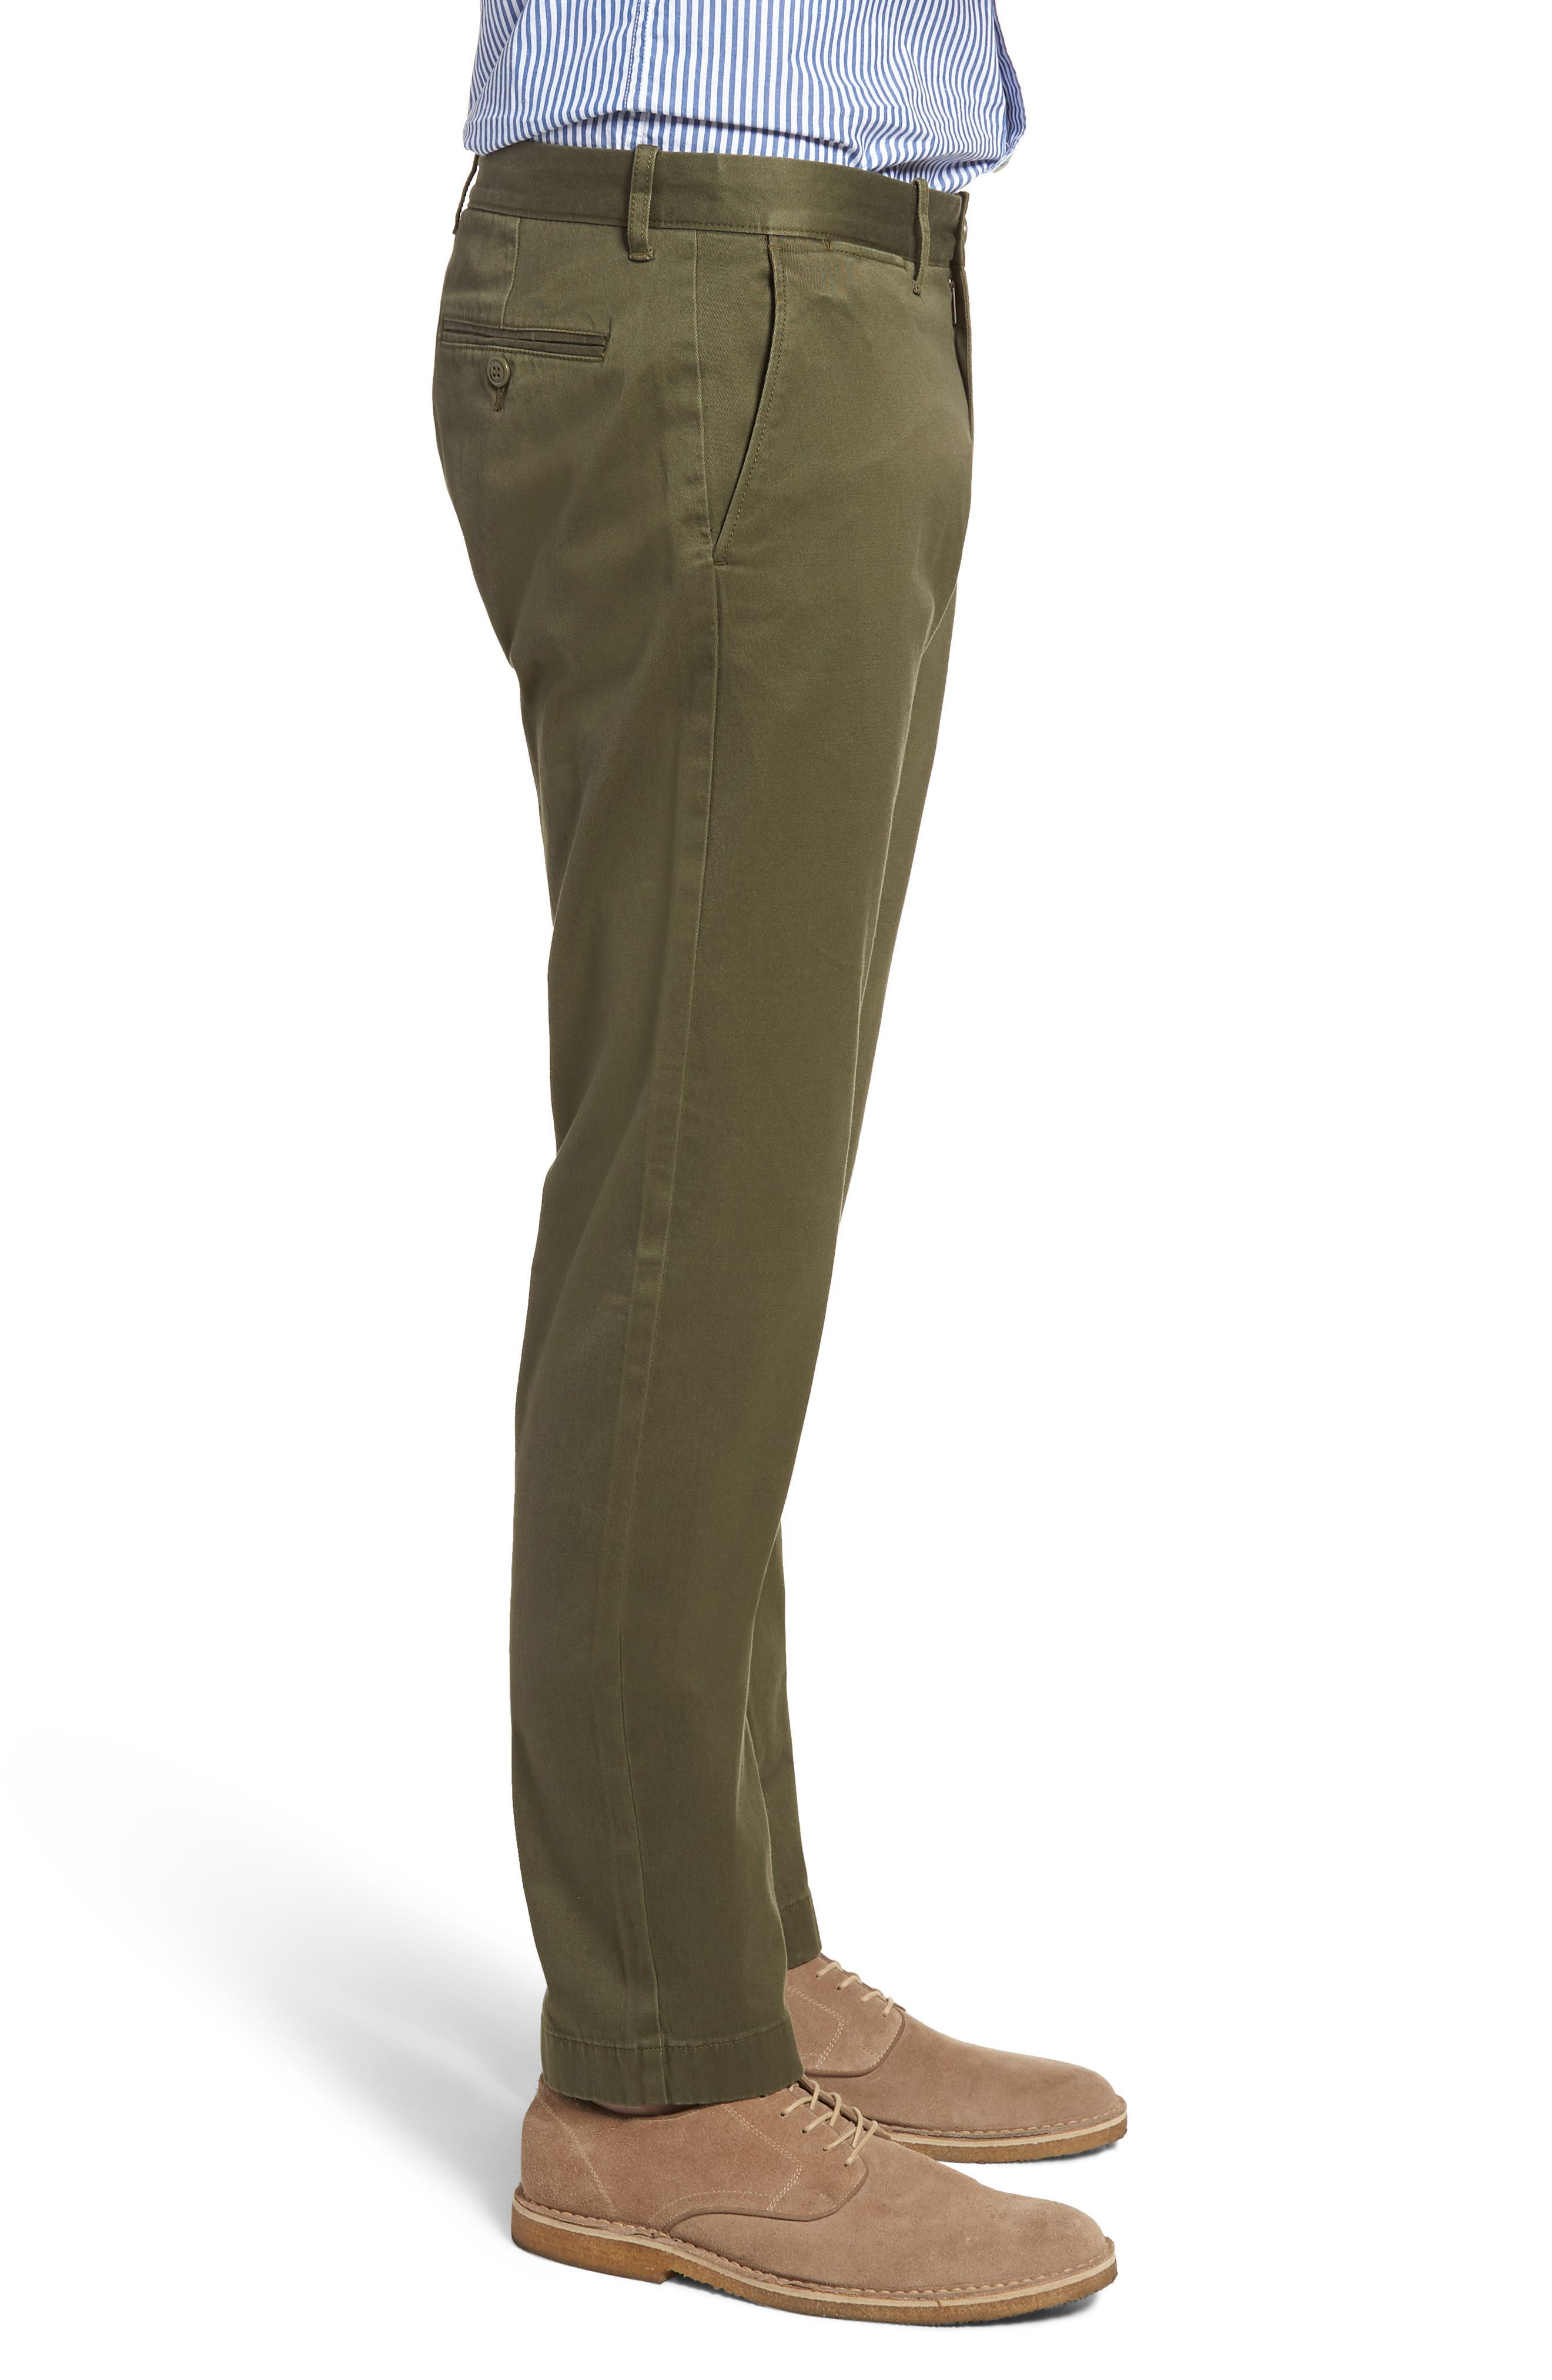 484 Slim Fit Stretch Chino Pants,                             Alternate thumbnail 30, color,